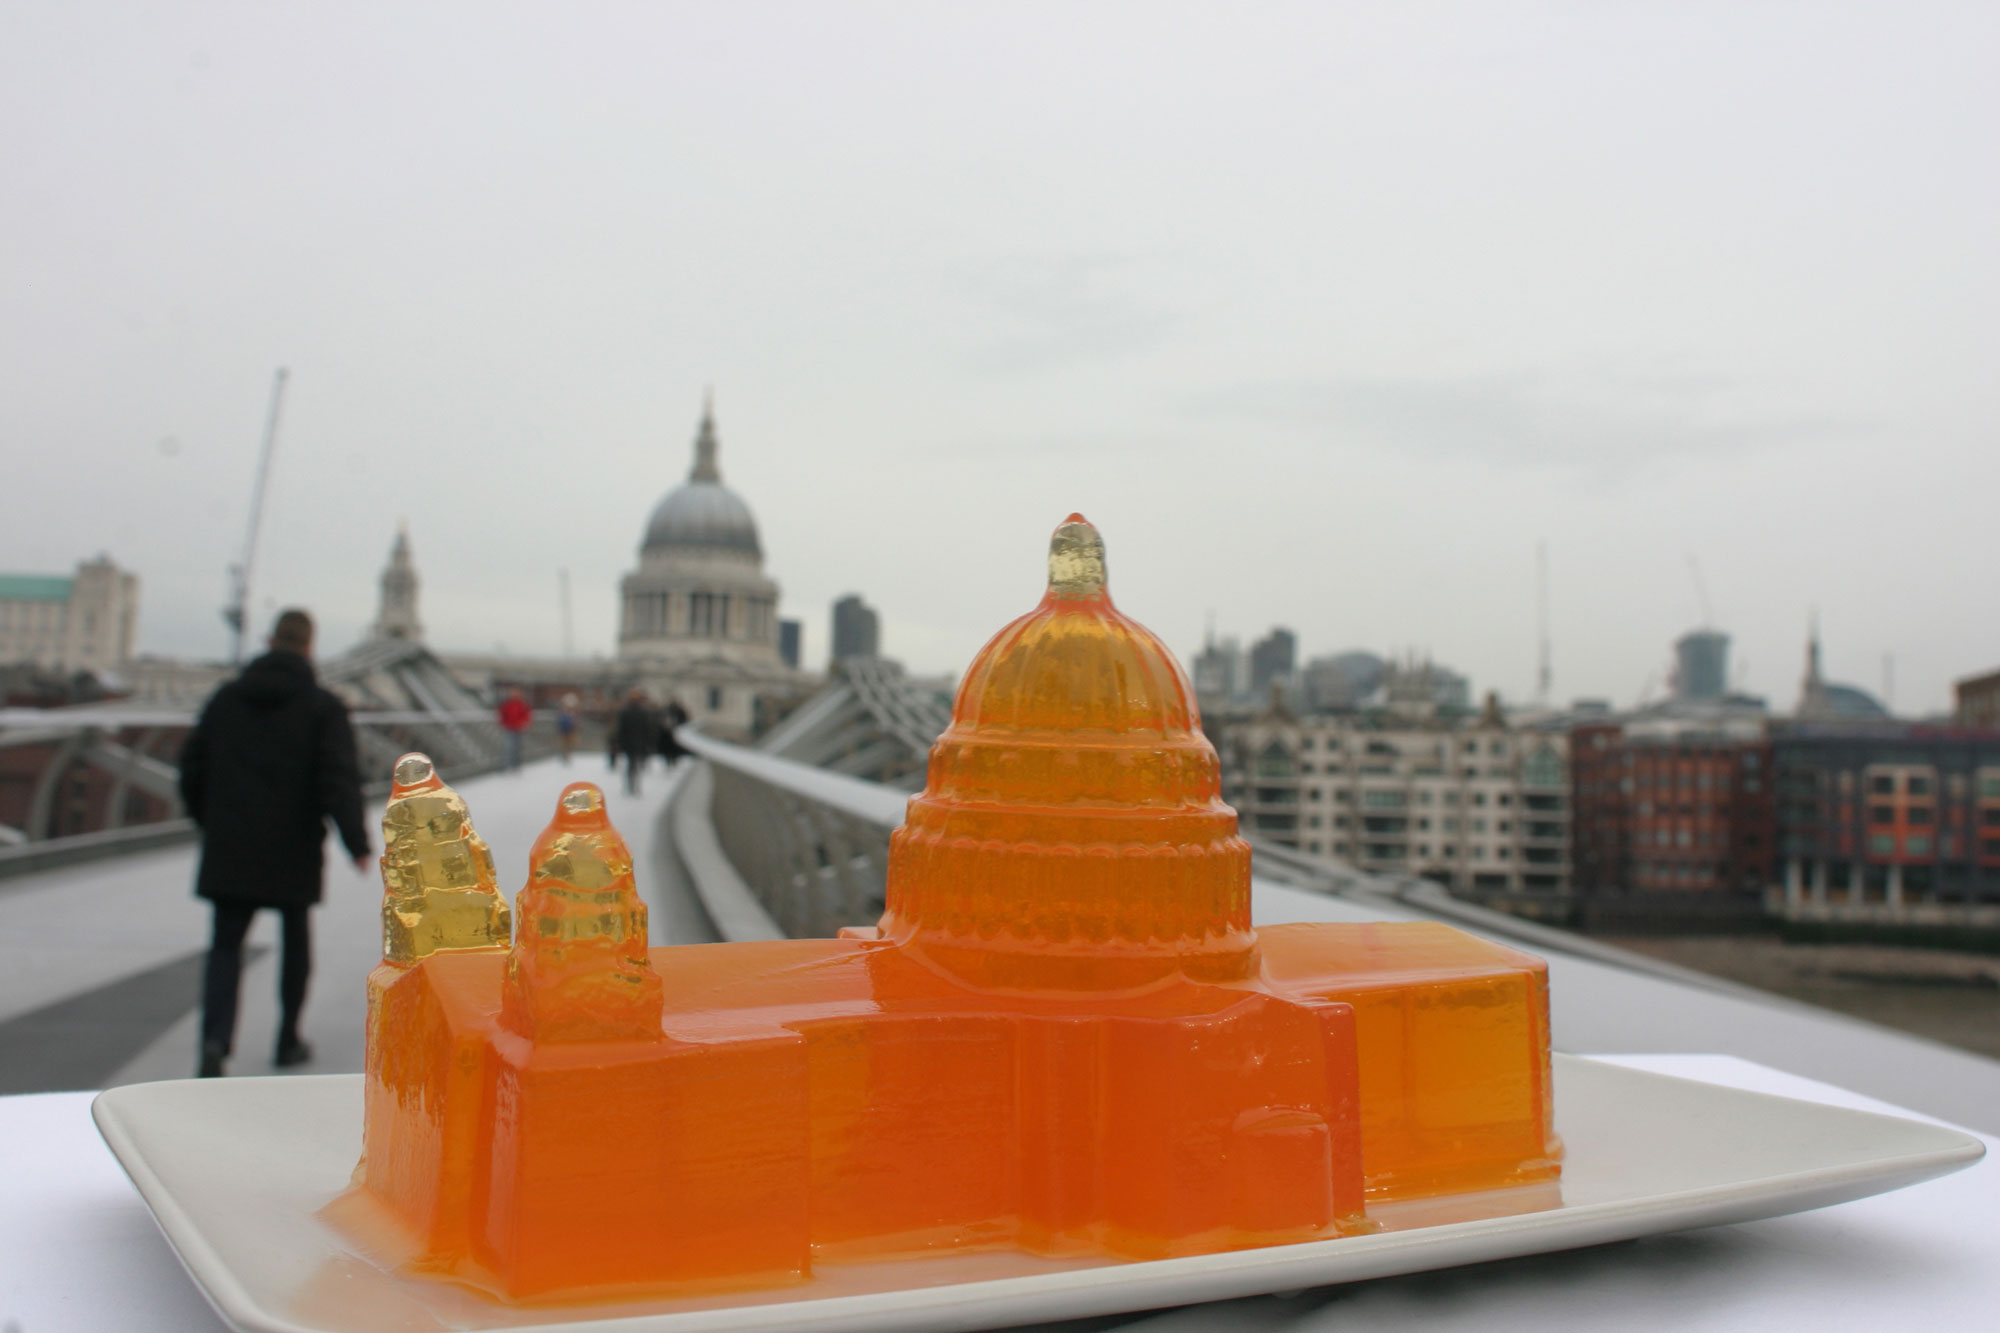 Jelly-St-Paul's-Cathedral-by-Bompas-&-Parr